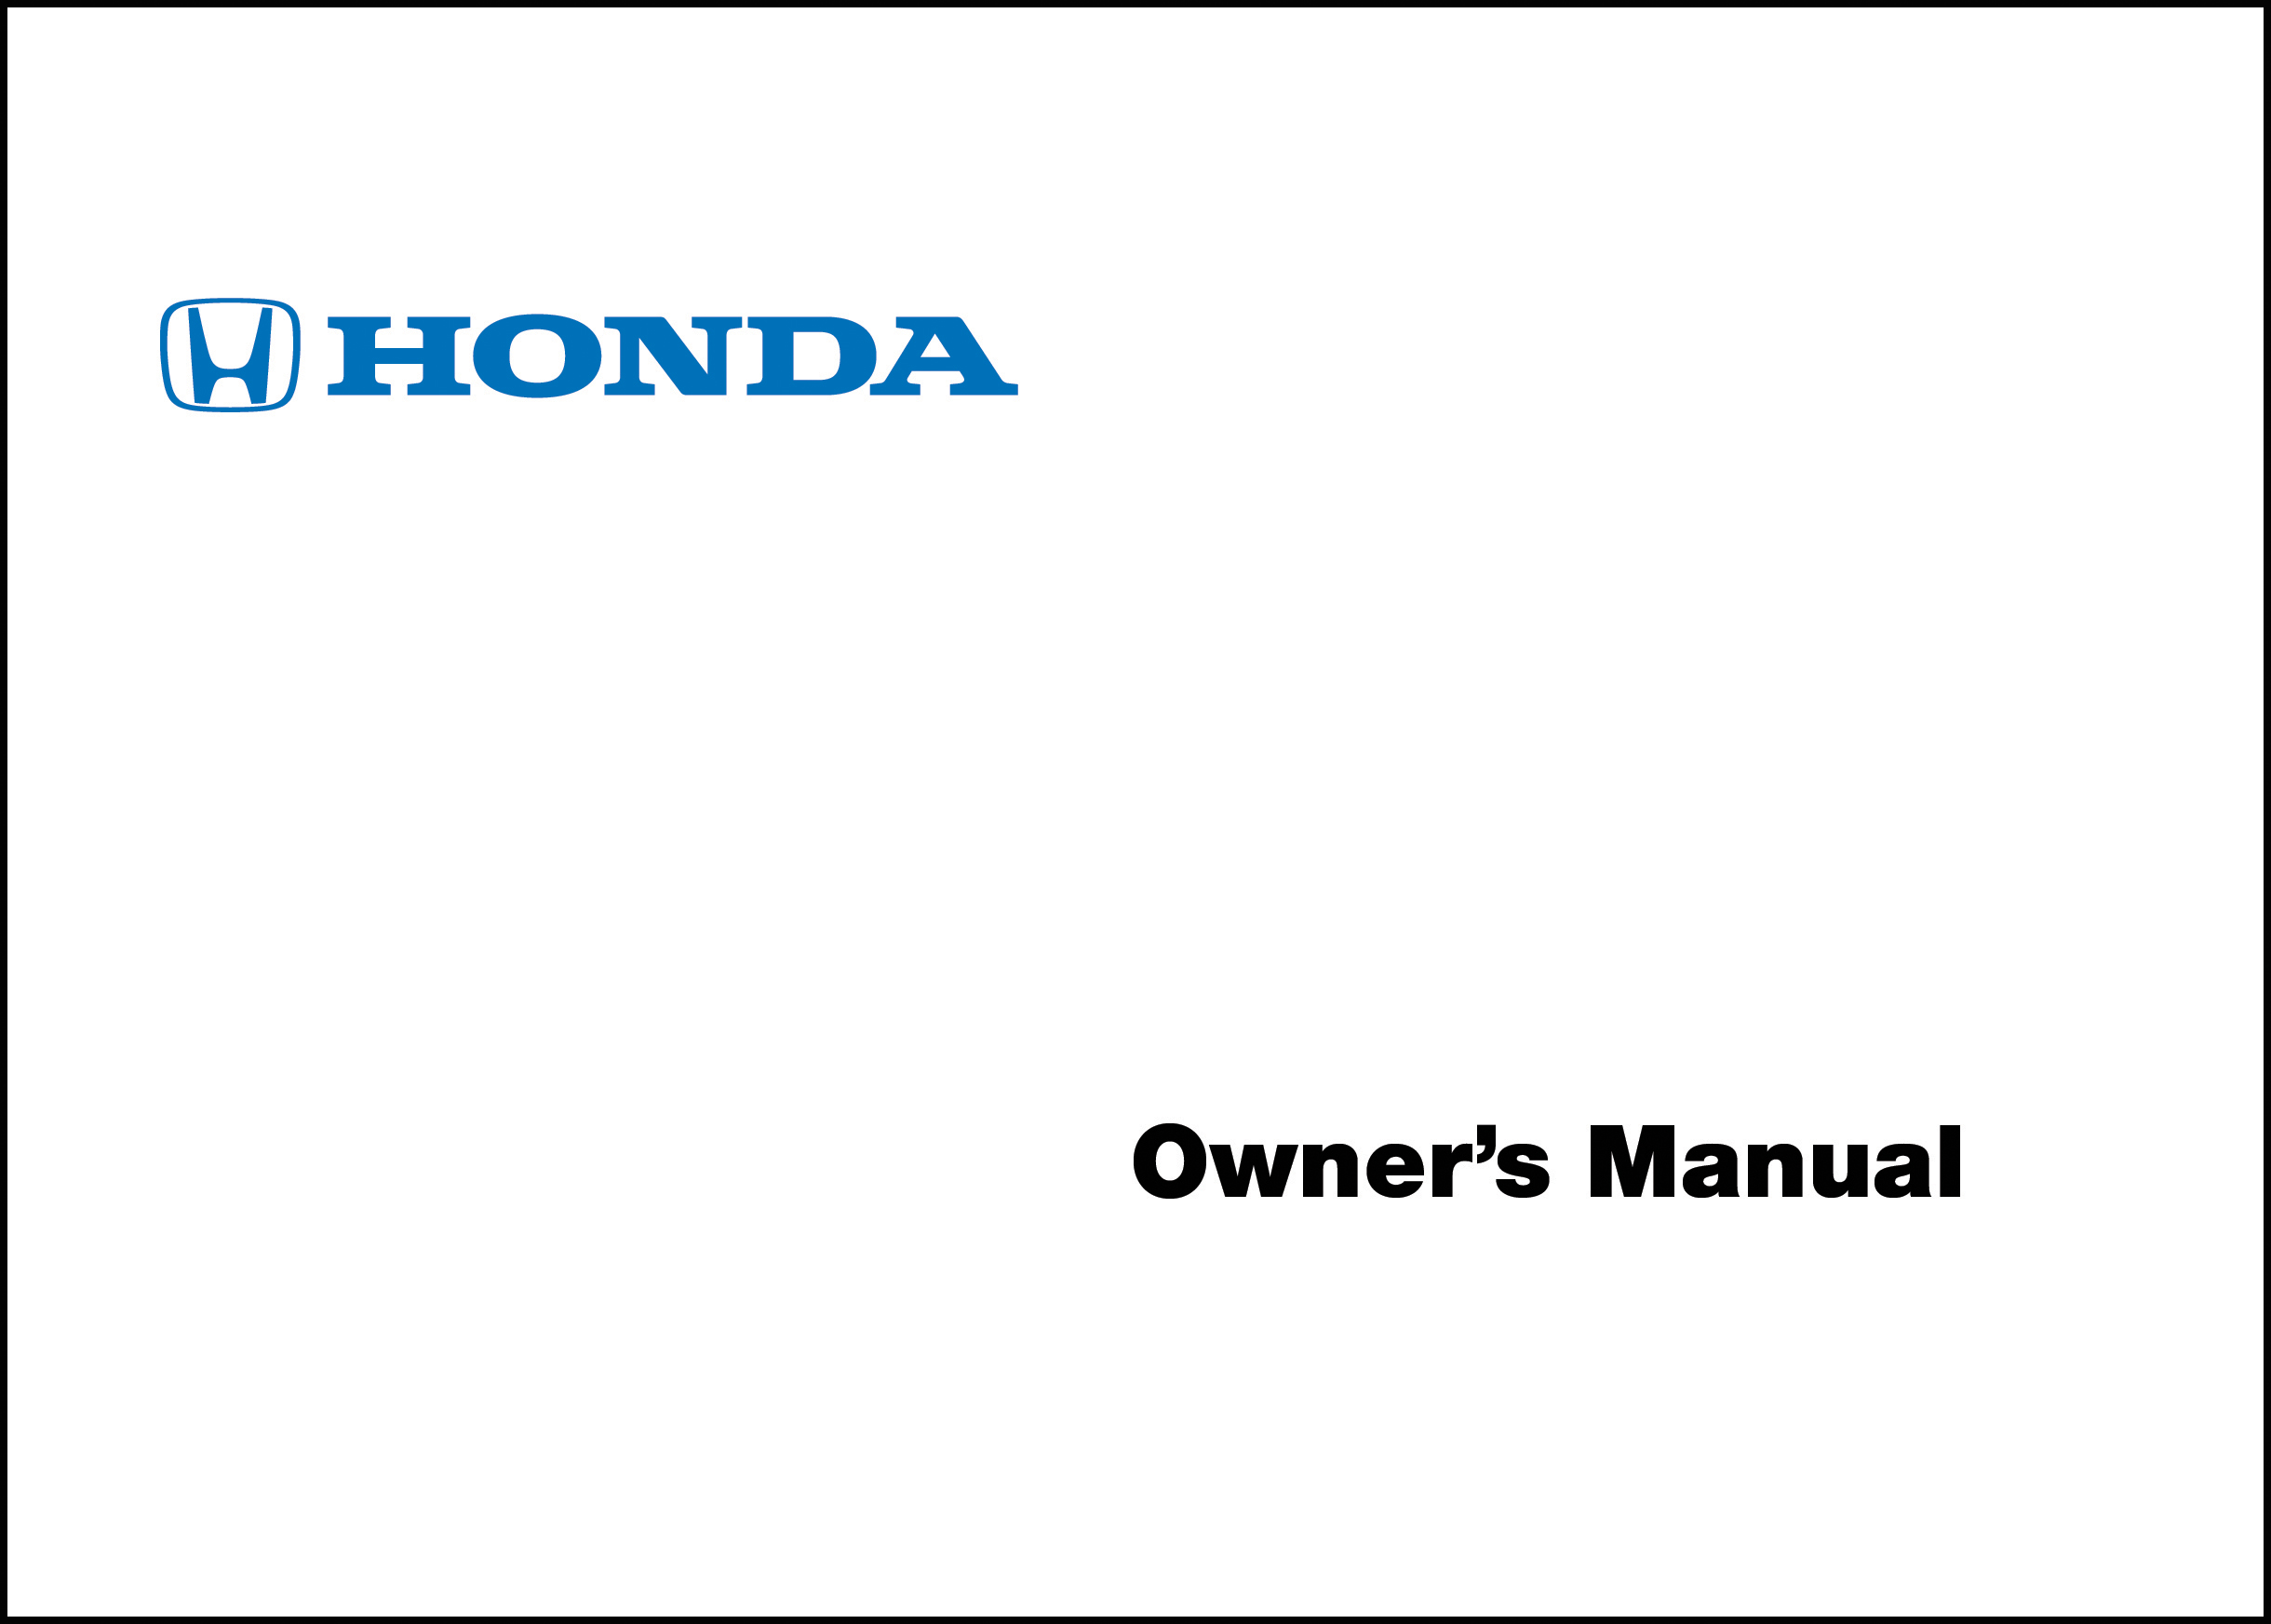 Honda 2001 Prelude Owner Manual 01